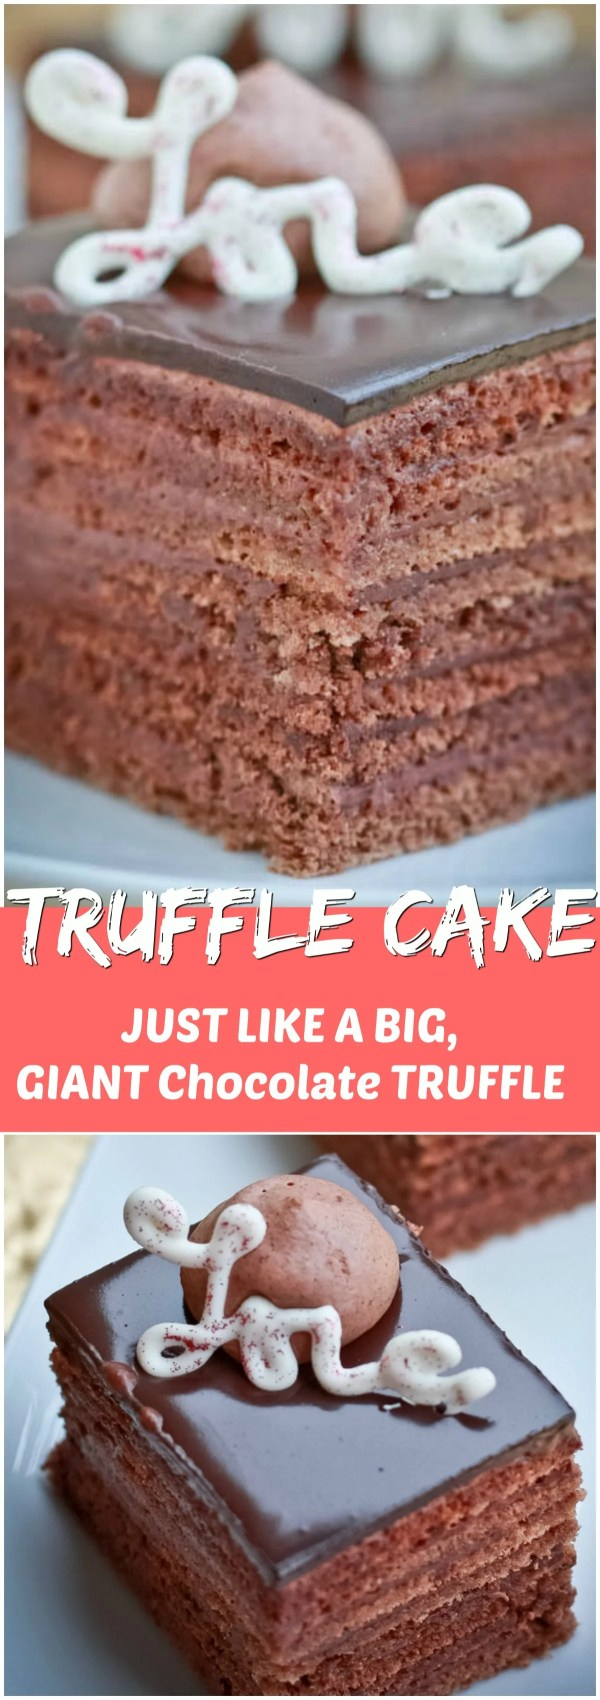 Delicious Truffle cake with with a chocolate layers and a dark chocolate truffle.